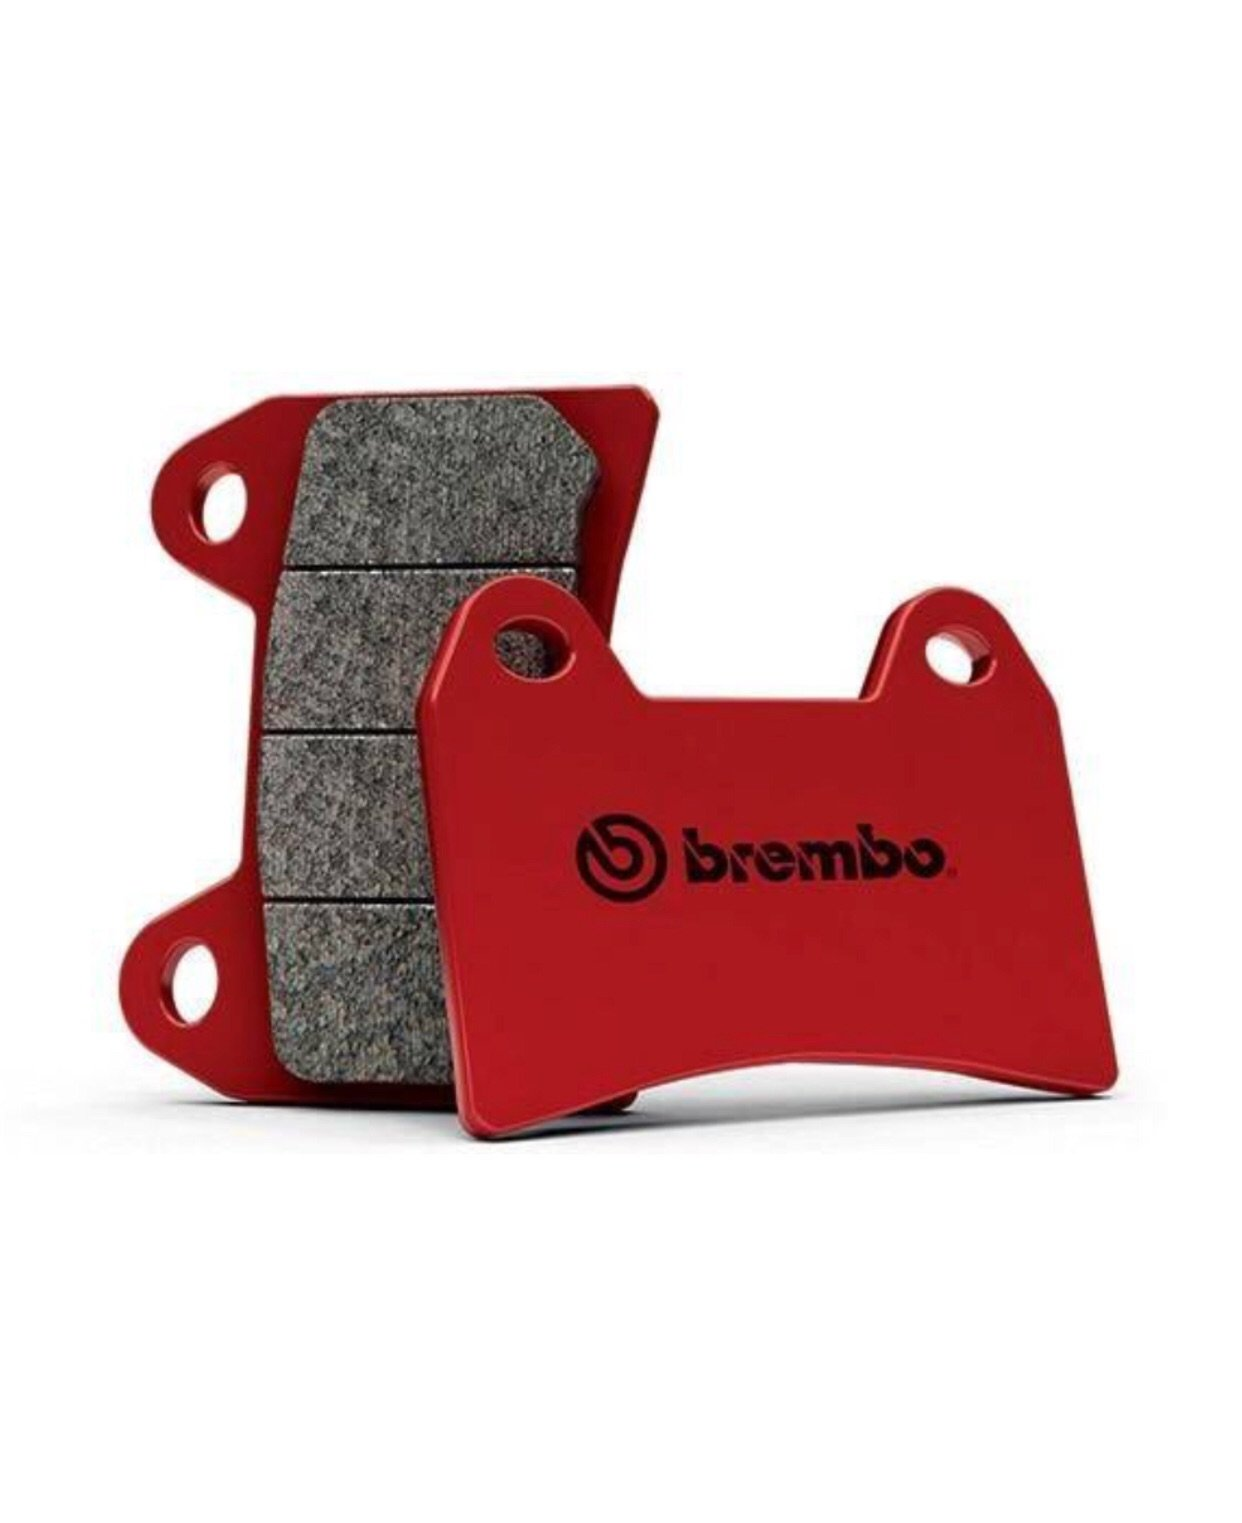 Honda, Brake Pads, Brembo - Race and Trackday Parts